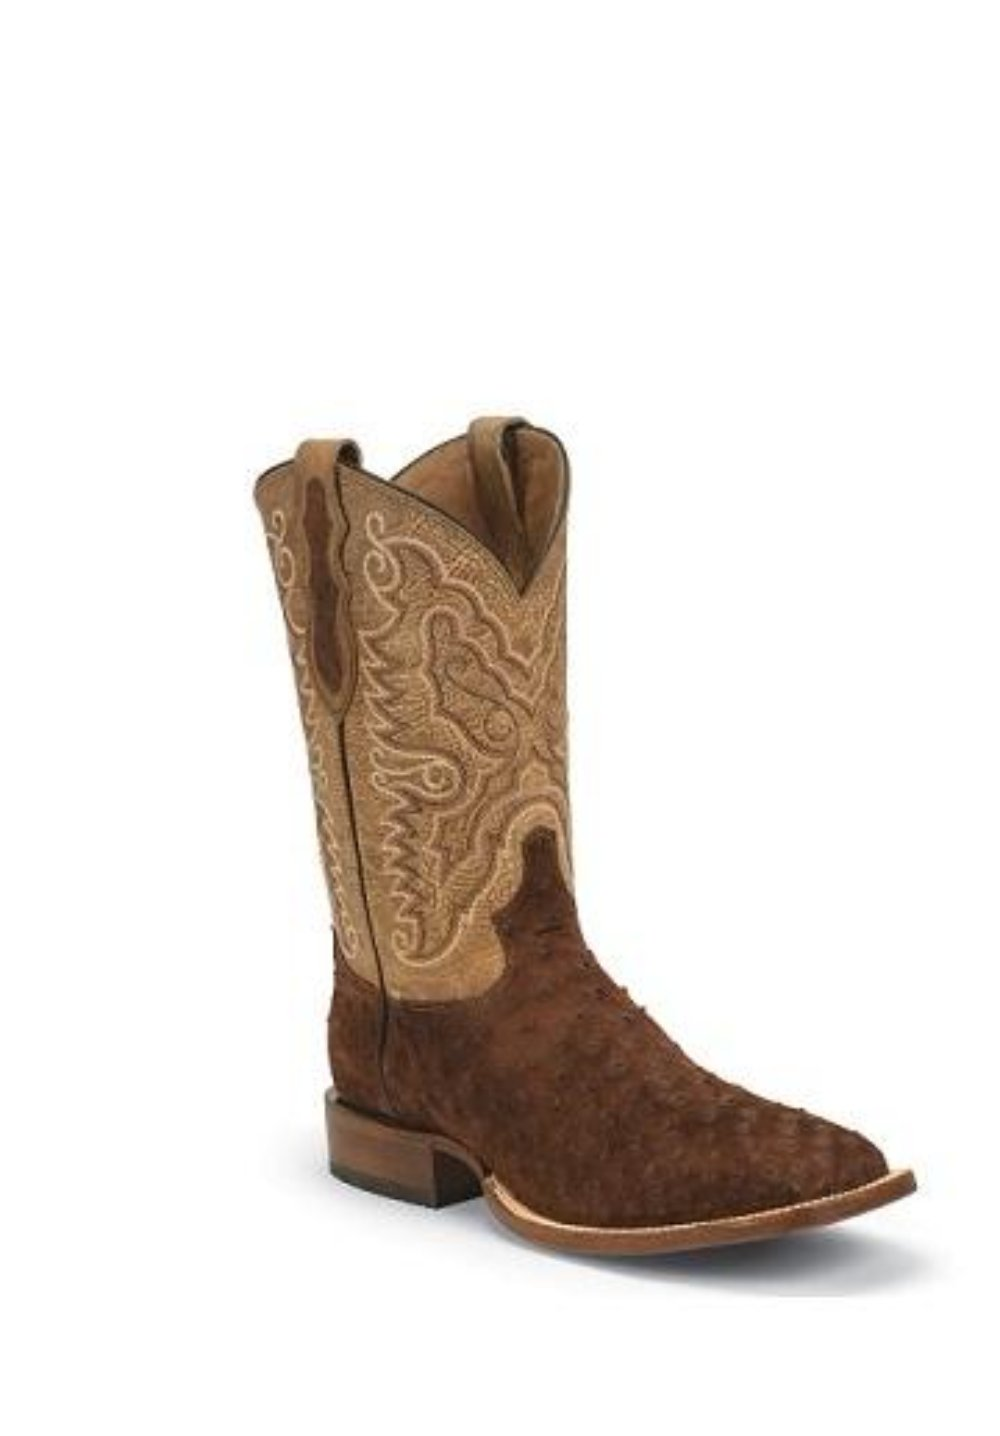 TONY LAMA MEN'S NAVARO FULL QUILL OSTRICH BOOT- STYLE #9093